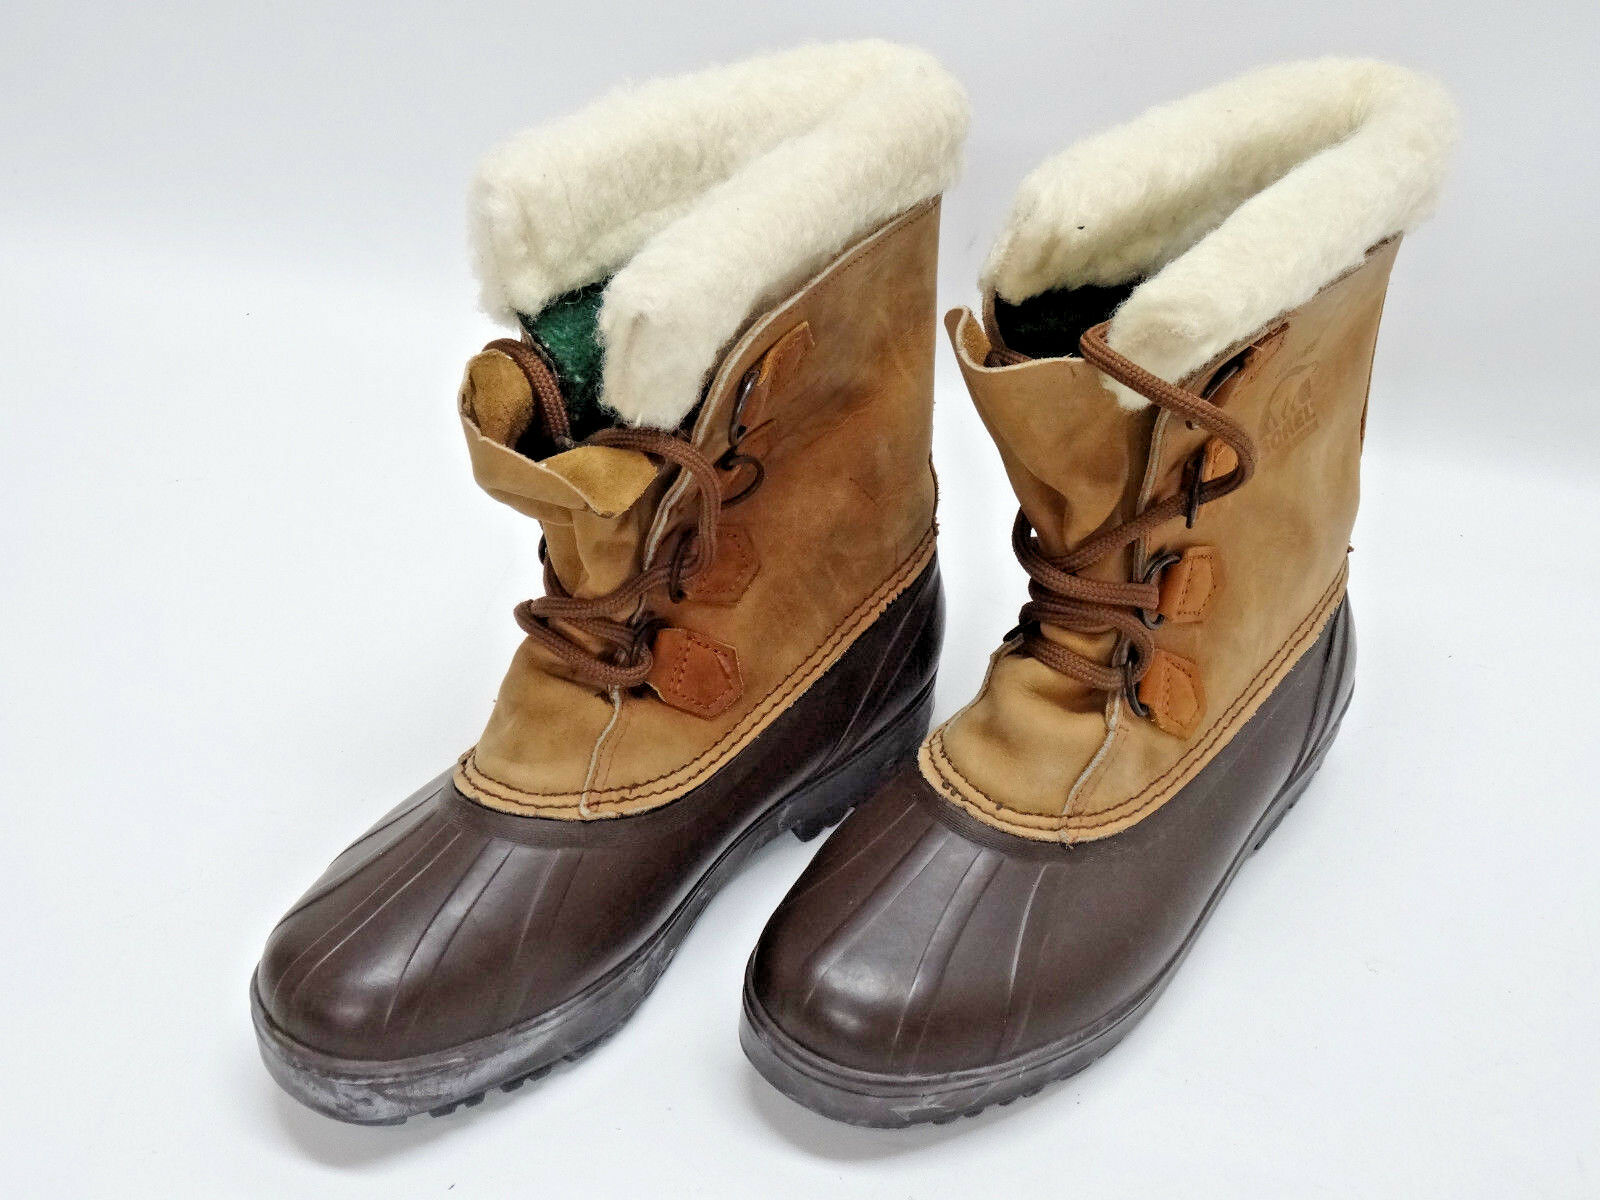 SOREL ALPINE WOMENS LEATHER SNOW BOOTS SIZE 9US/39-40EU/7UK in EUC